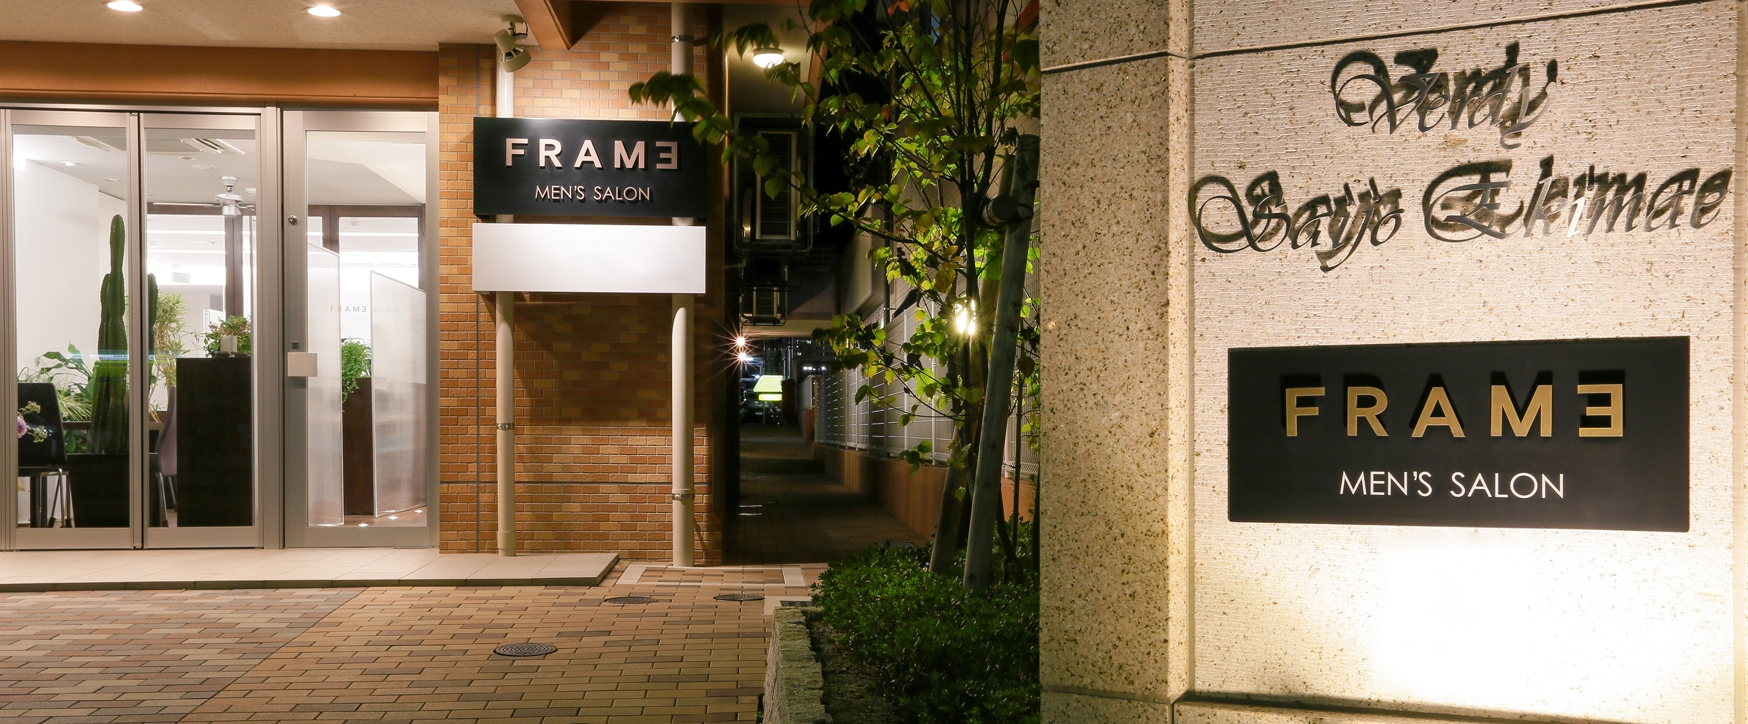 FRAME MEN'S SALON